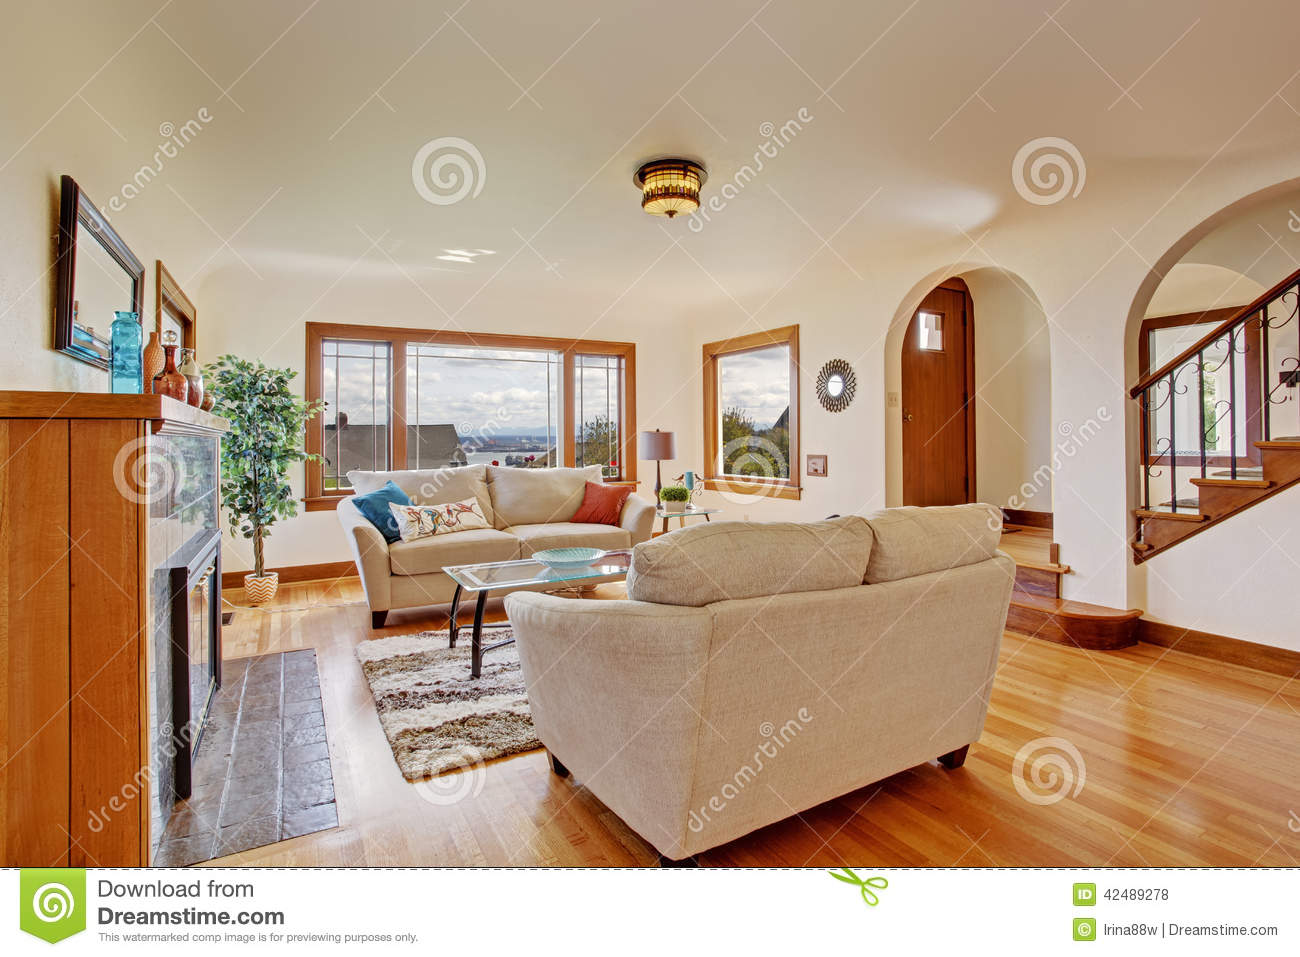 Bright living room in light ivory tones stock photo image 42489278 - Bright lamps for living room ...